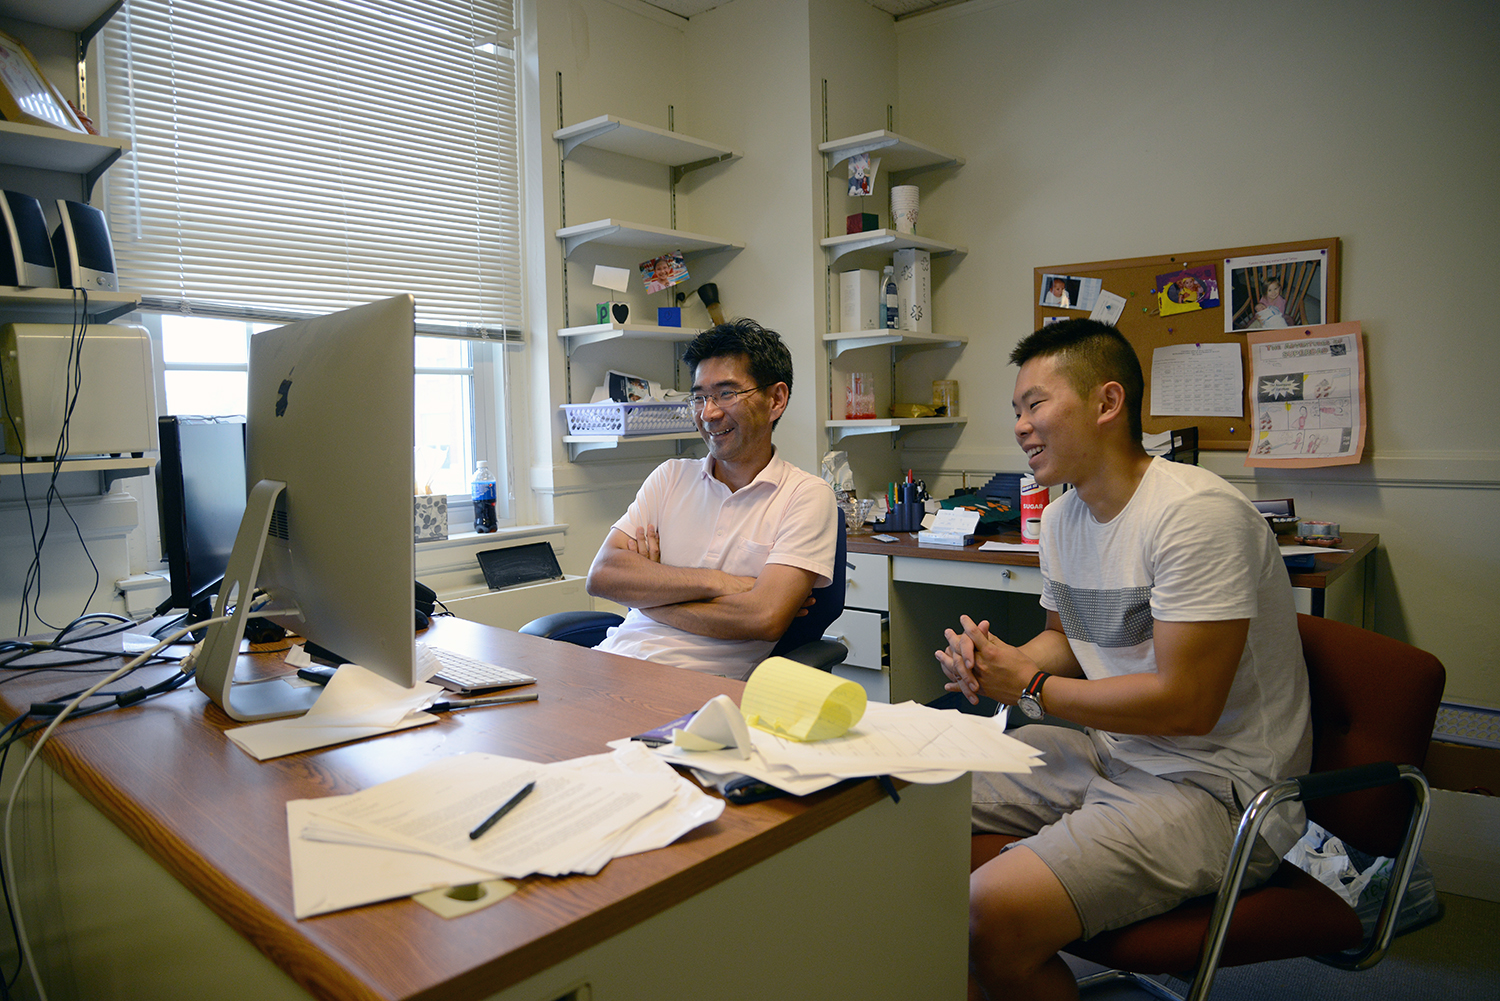 Masami Imai, chair and professor of economics, professor of East Asian studies, met with with Brian Oh '19.